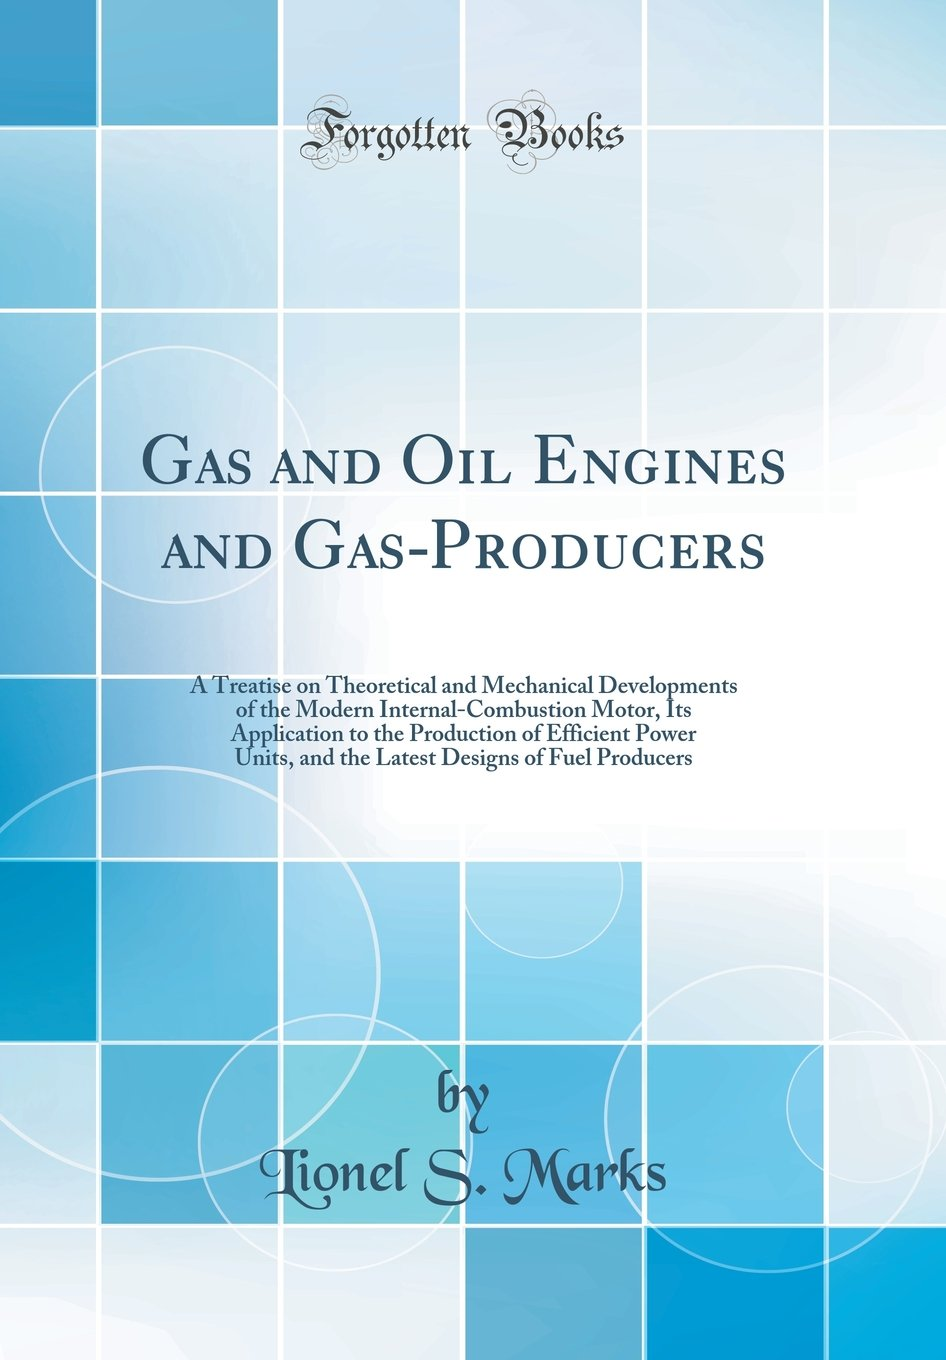 Gas and Oil Engines and Gas-Producers: A Treatise on Theoretical and Mechanical Developments of the Modern Internal-Combustion Motor, Its Application Designs of Fuel Producers (Classic Reprint)